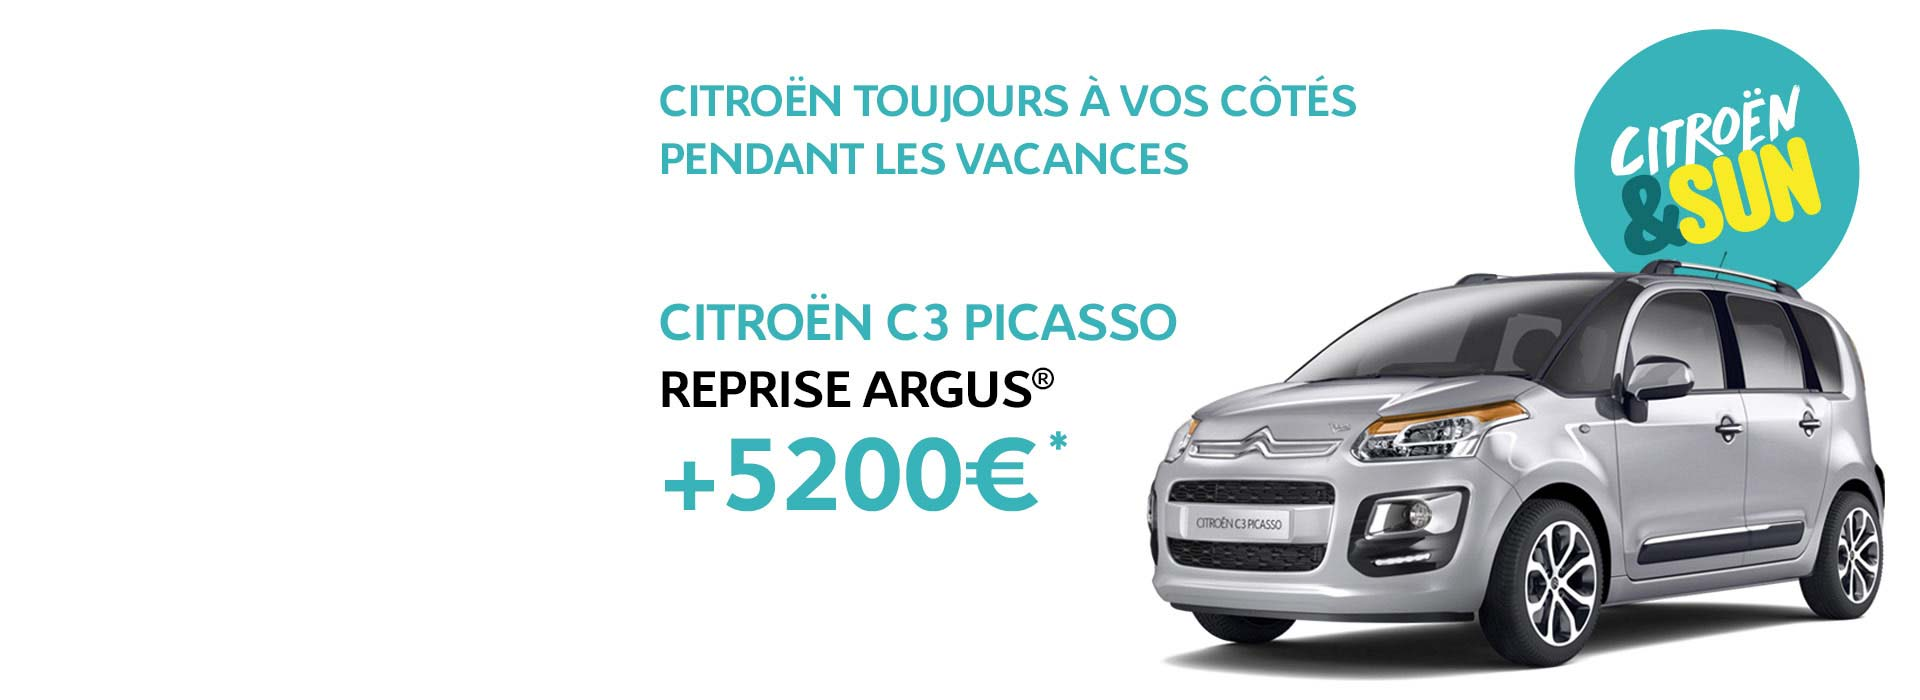 citroen sallanches concessionnaire garage haute ForGarage Citroen Sallanches